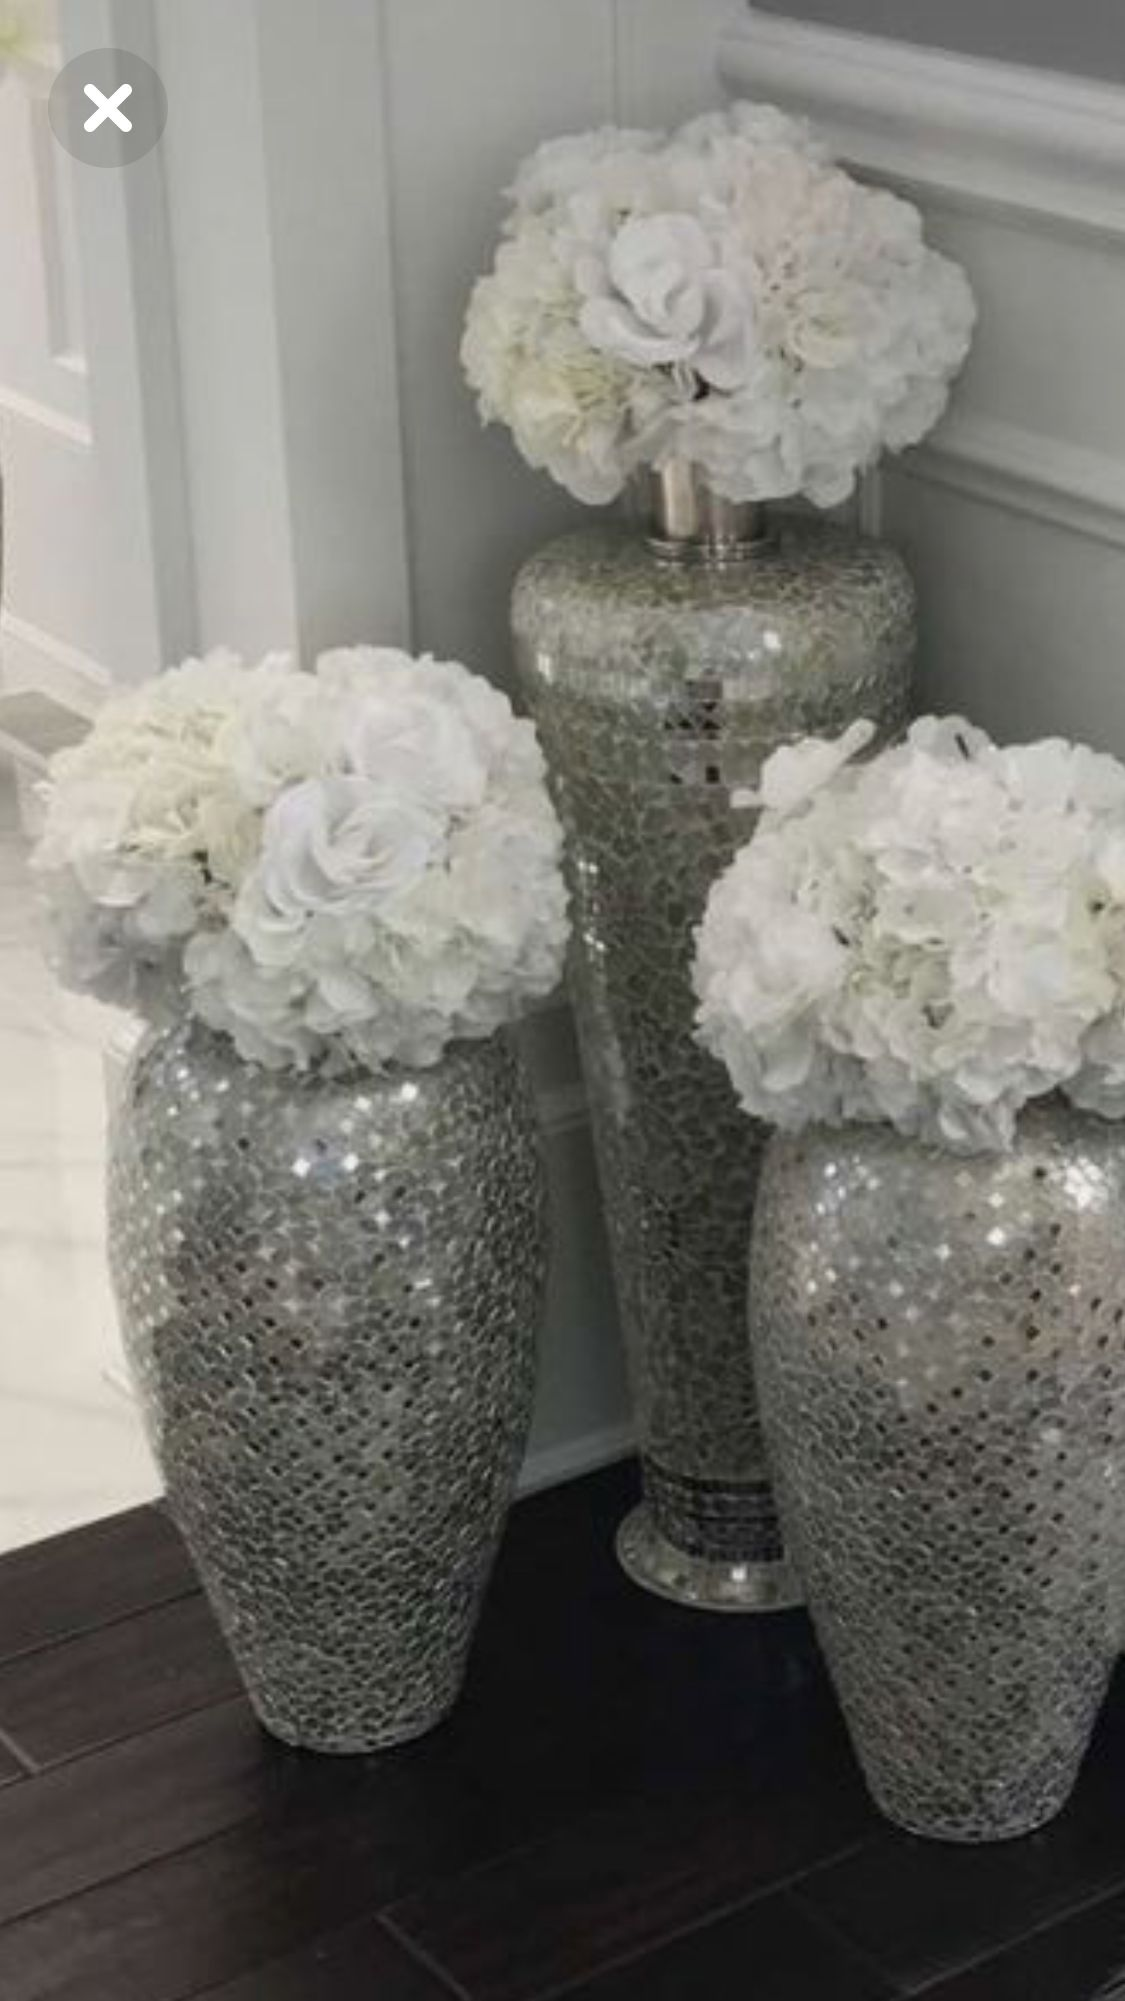 Pin By Briana On Centerpieces Silver Living Room Decor Silver Living Room Glitter Vases